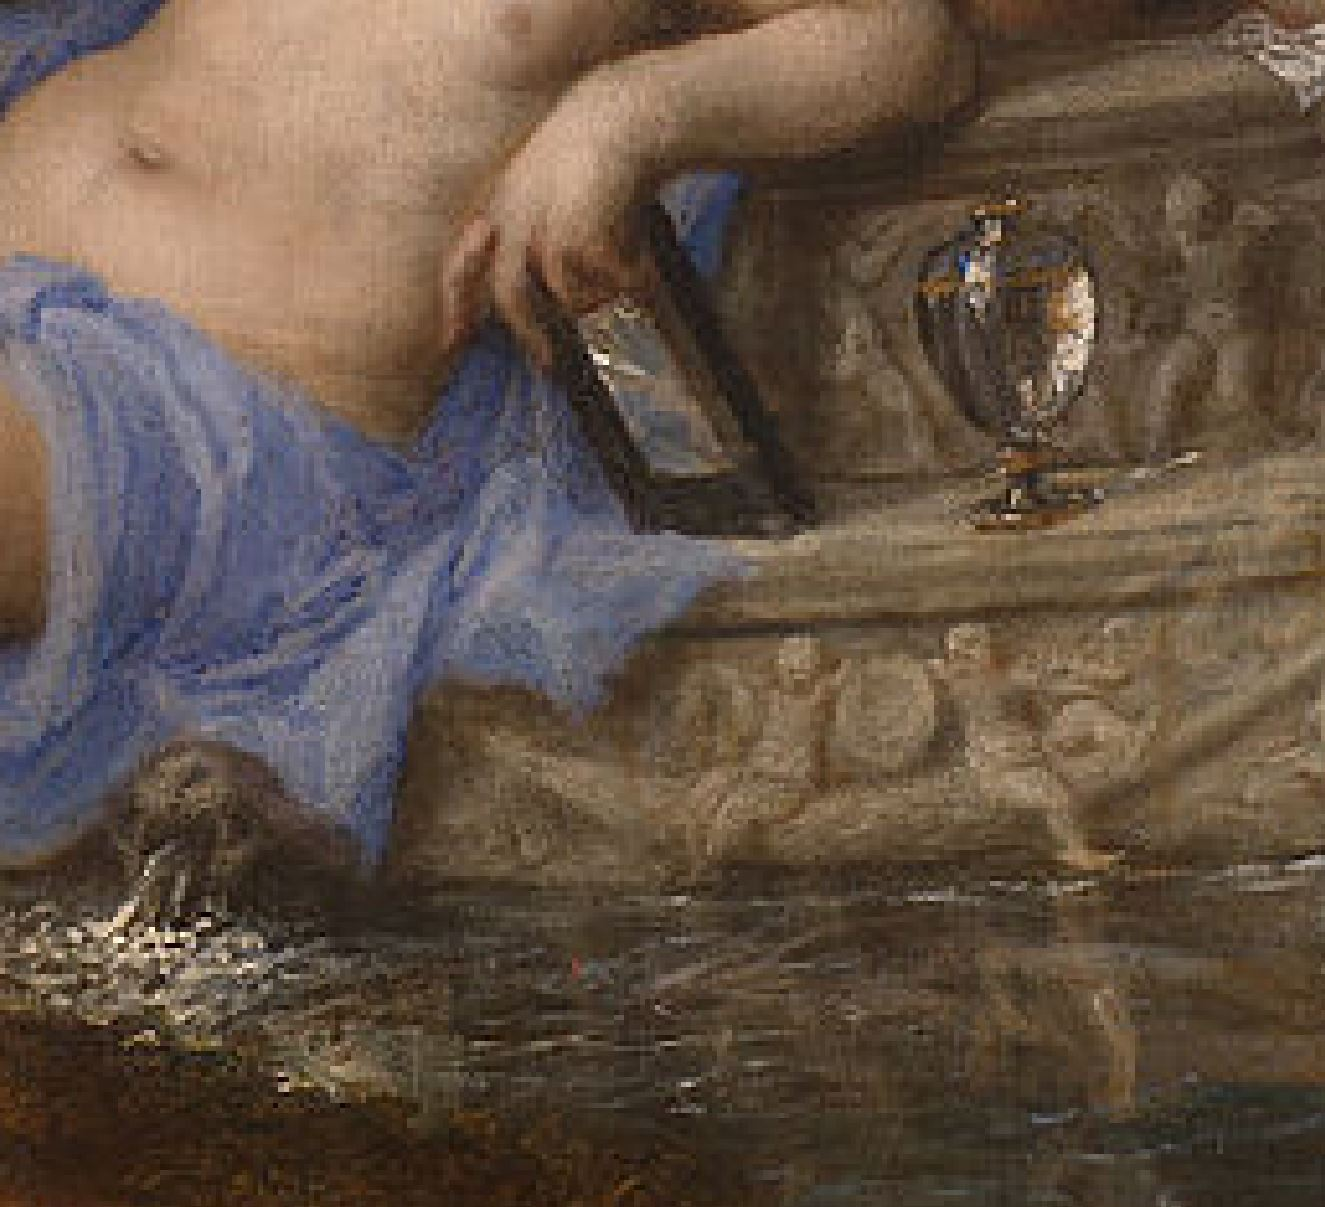 Titien 1556-1559 Diane et Acteon, Londres, National Gallery et Edimbourg, National Gallery of Scotland detail vision